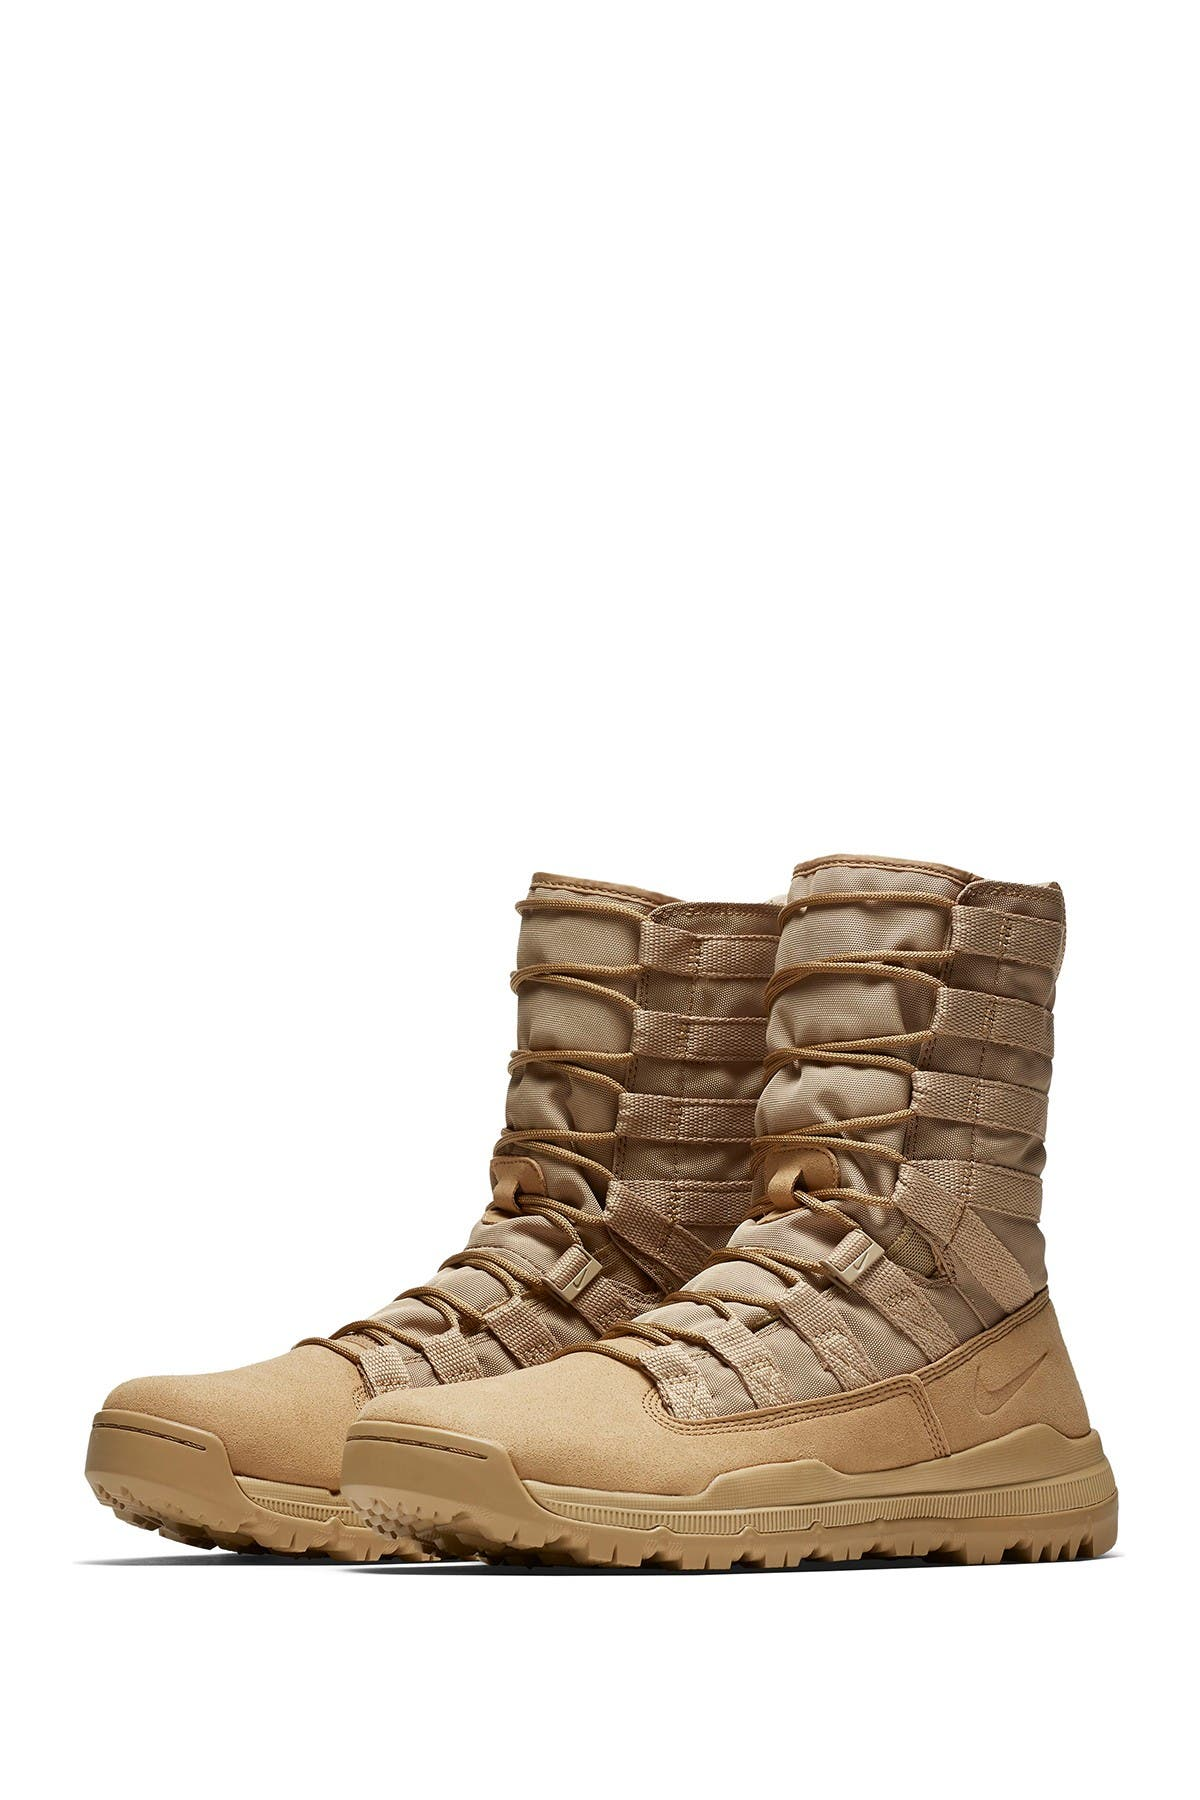 """Image of Nike SFB Gen 2 8"""" Tactical Boot"""